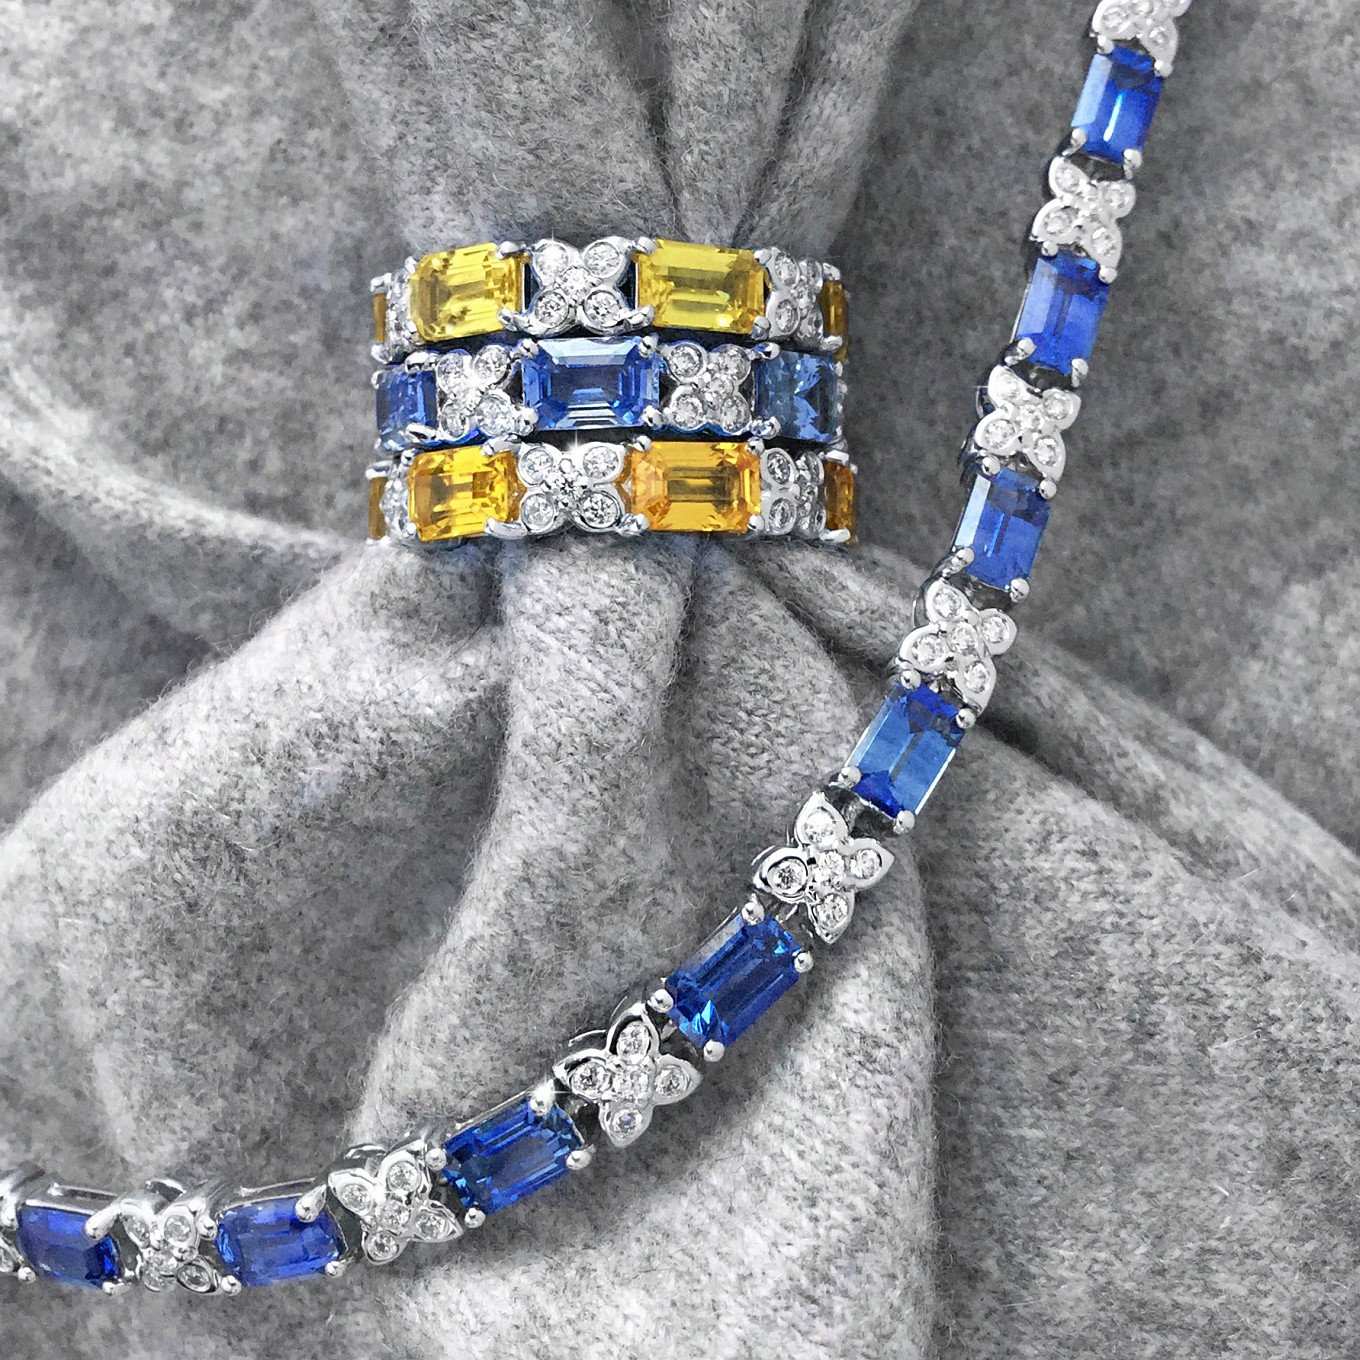 EMERALD CUT YELLOW & BLUE SAPPHIRE DIAMOND SEVILLA  ETERNITY BANDS IN WHITE GOLDEMERALD CUT SAPPHIRE 8.10 CTS & DIAMOND 0.85 CTS BRACELET IN WHITE GOLD